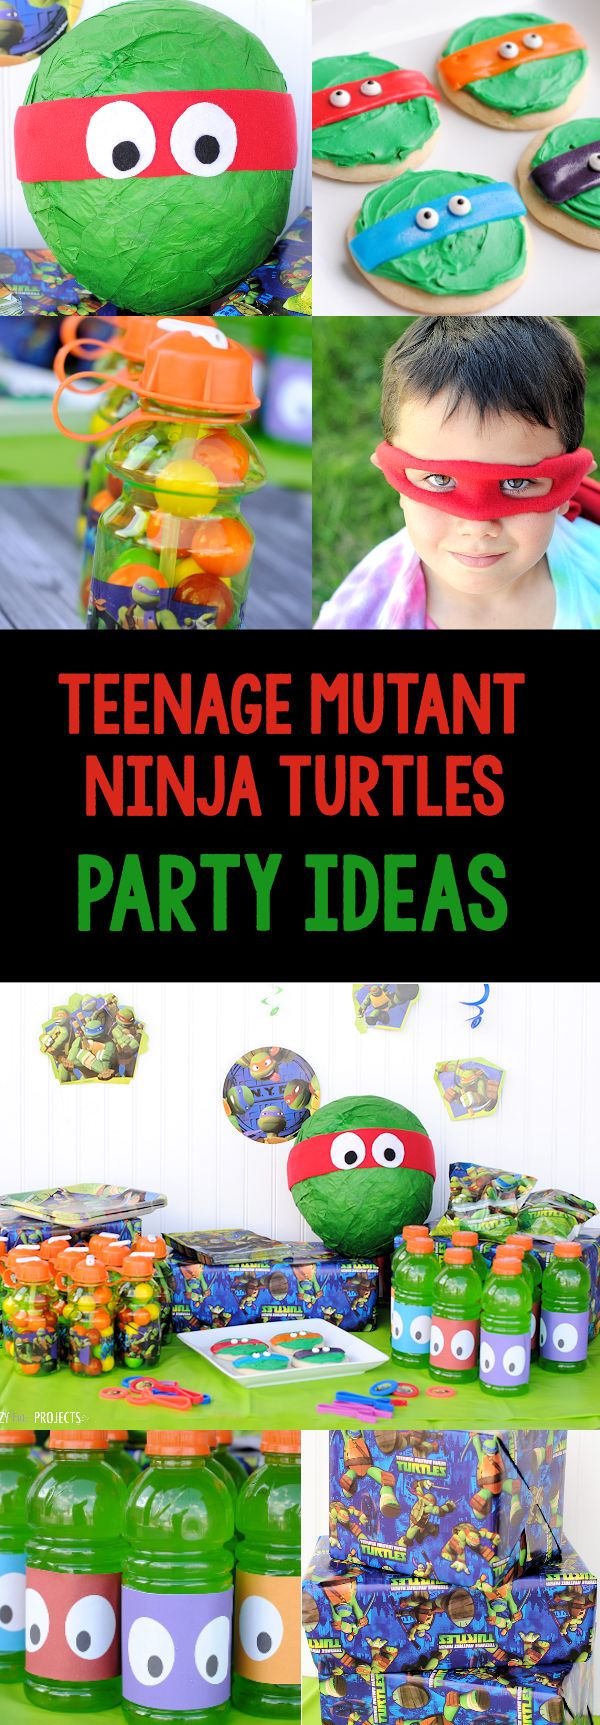 Teenage Mutant Ninja Turtles Party Ideas-Games, Invitations, Favors, Food & More